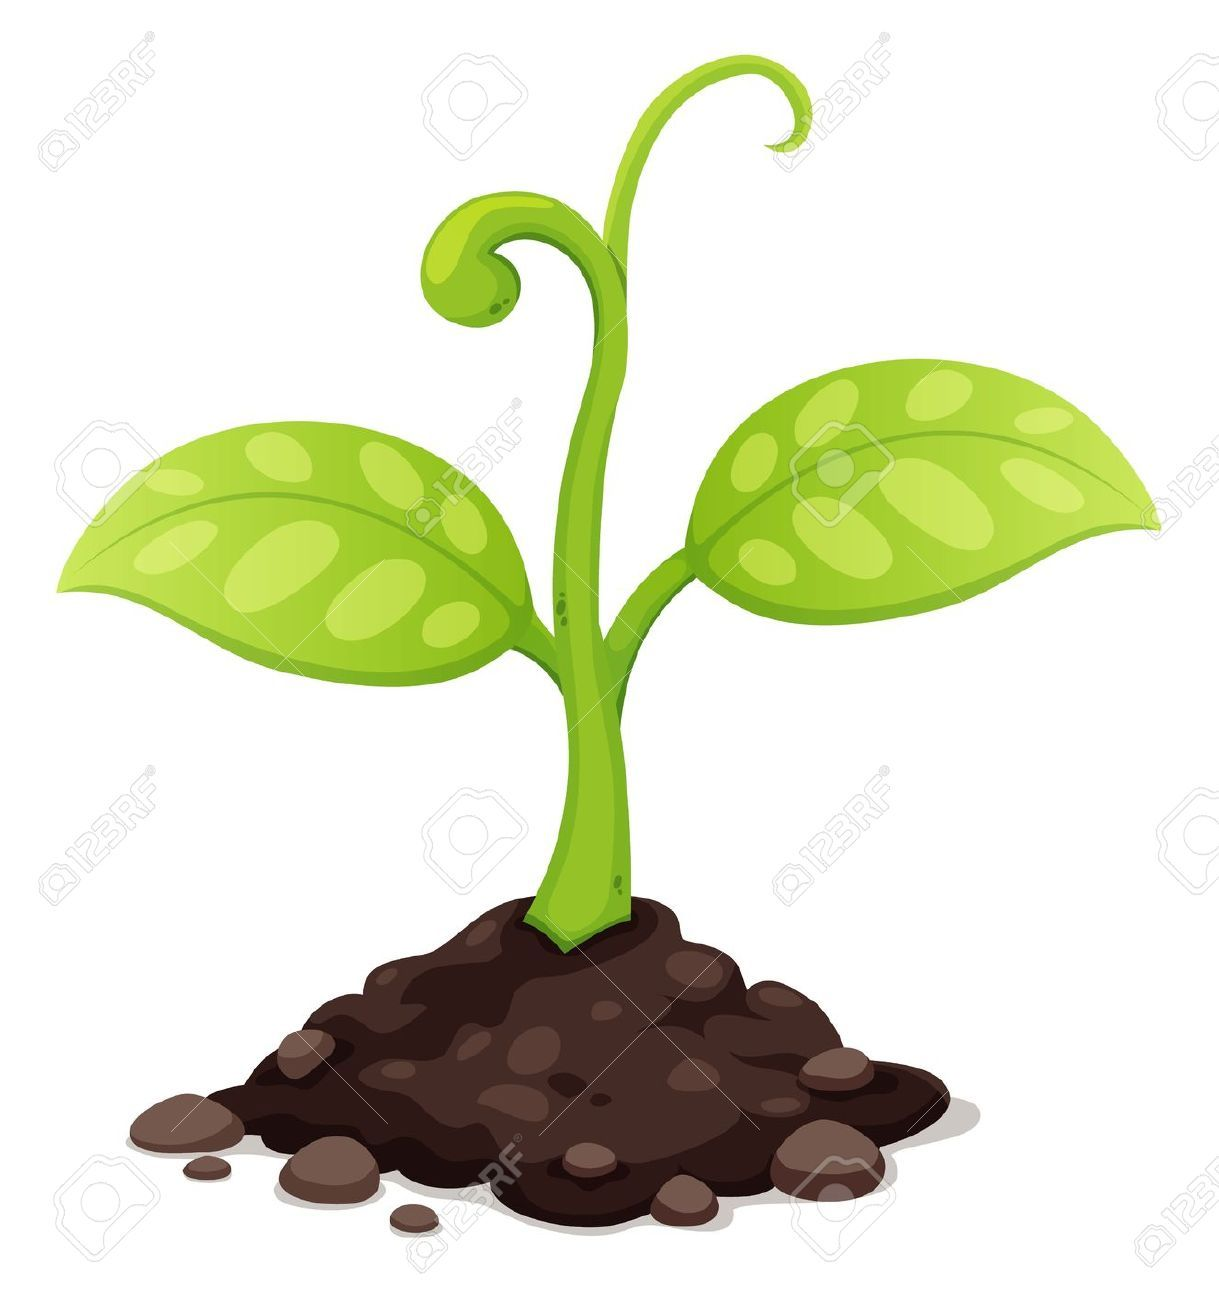 Seed Growing Images, Stock Pictures, Royalty Free Seed.